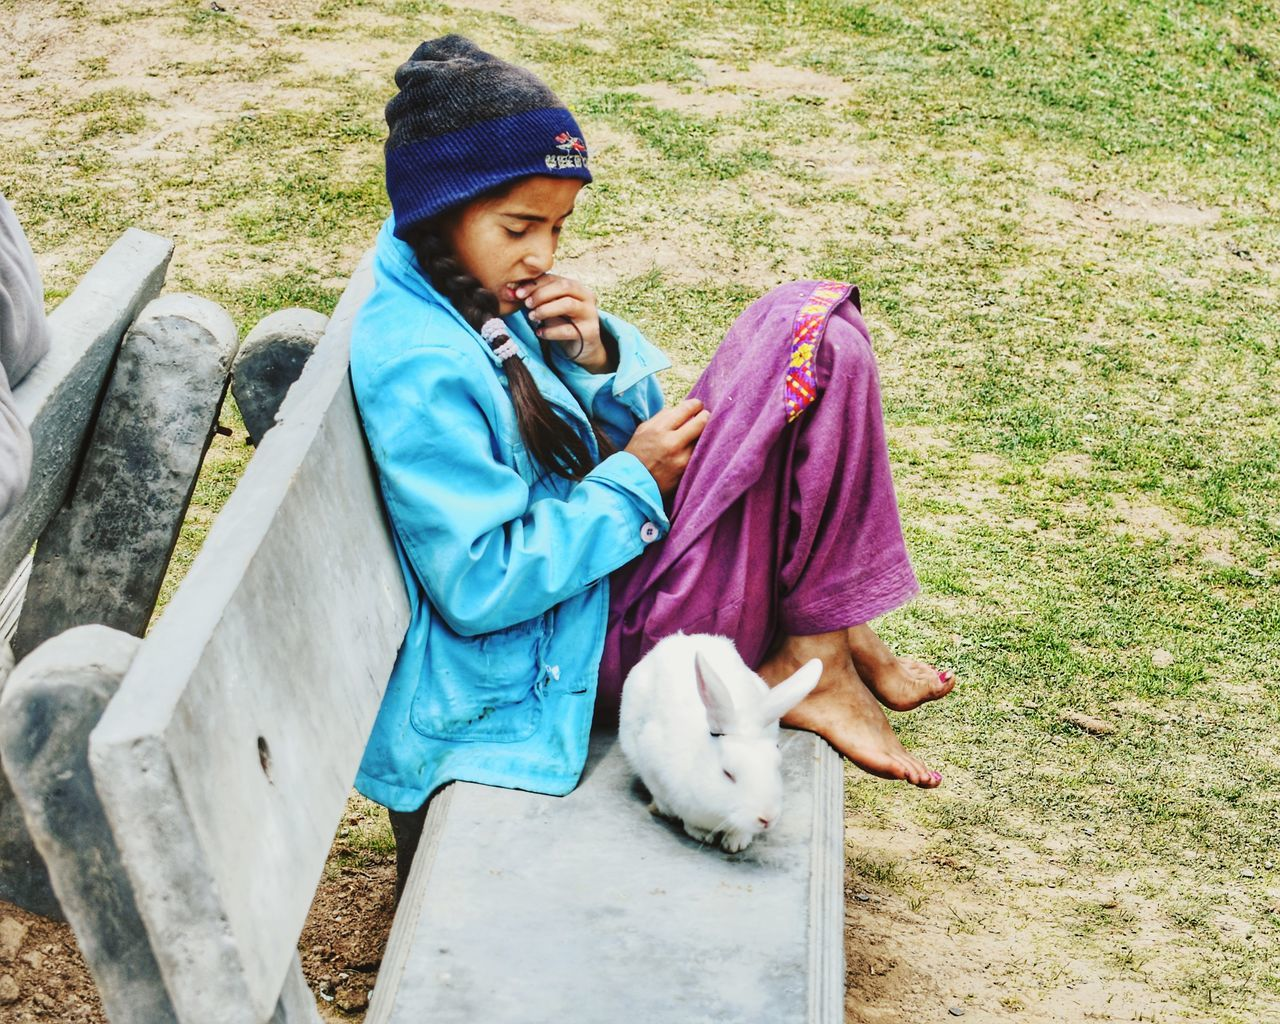 Childhood Full Length High Angle View One Person Outdoors Children Only Girl With Her Pet Rabbit Village Girl Innocence Of A Child